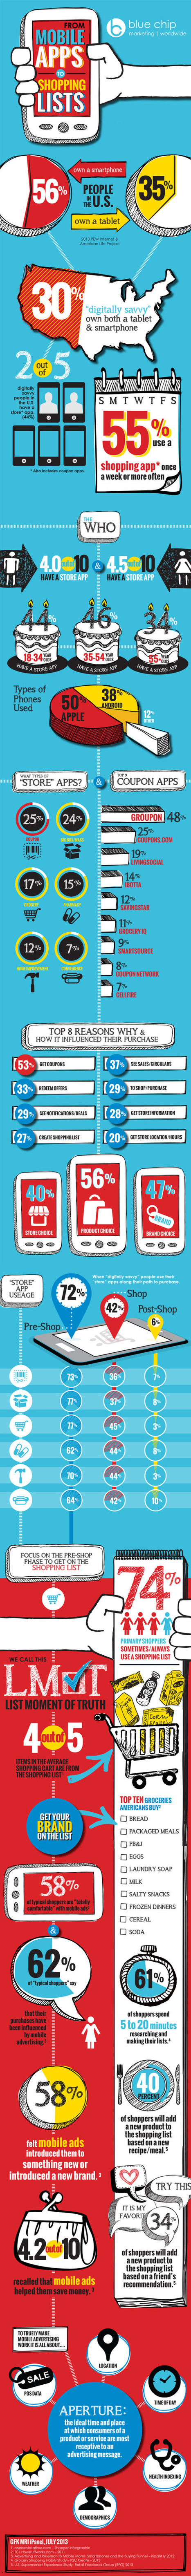 Infographic: Holiday Guide to Mobile Marketing - Marketing Technology Blog | Couponing, M-Couponing, E-Couponing, M-Wallet & Co. | Scoop.it